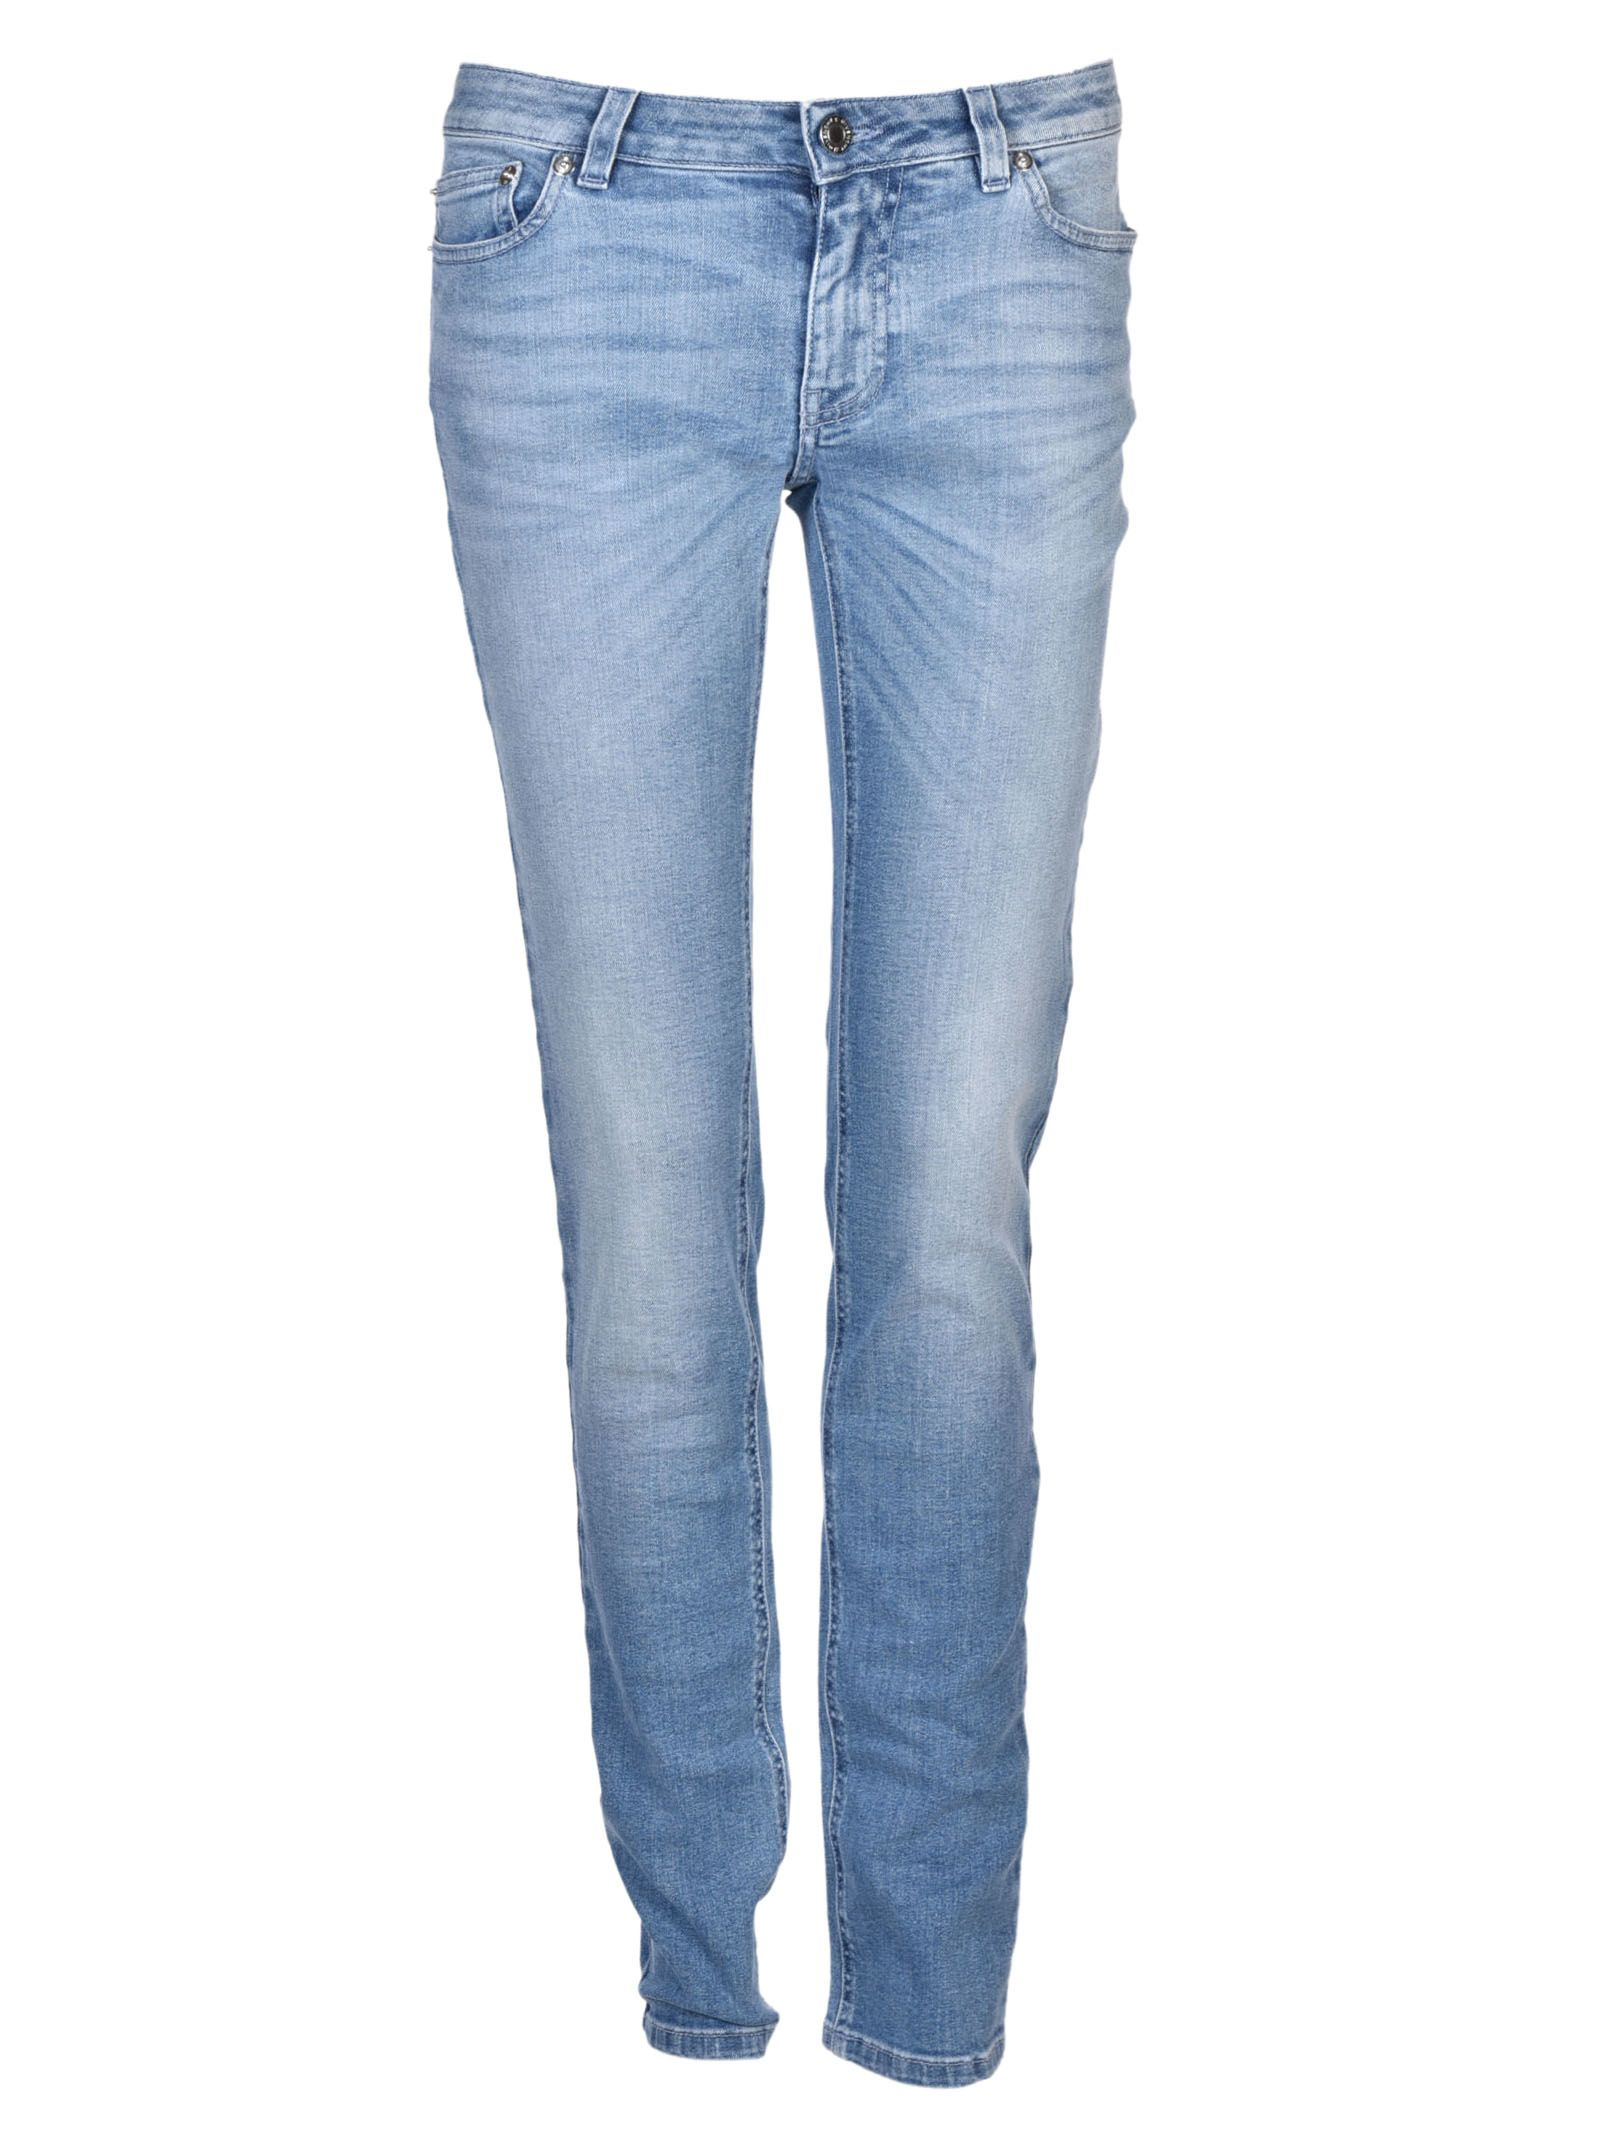 Givenchy Star Print Slim Fit Jeans